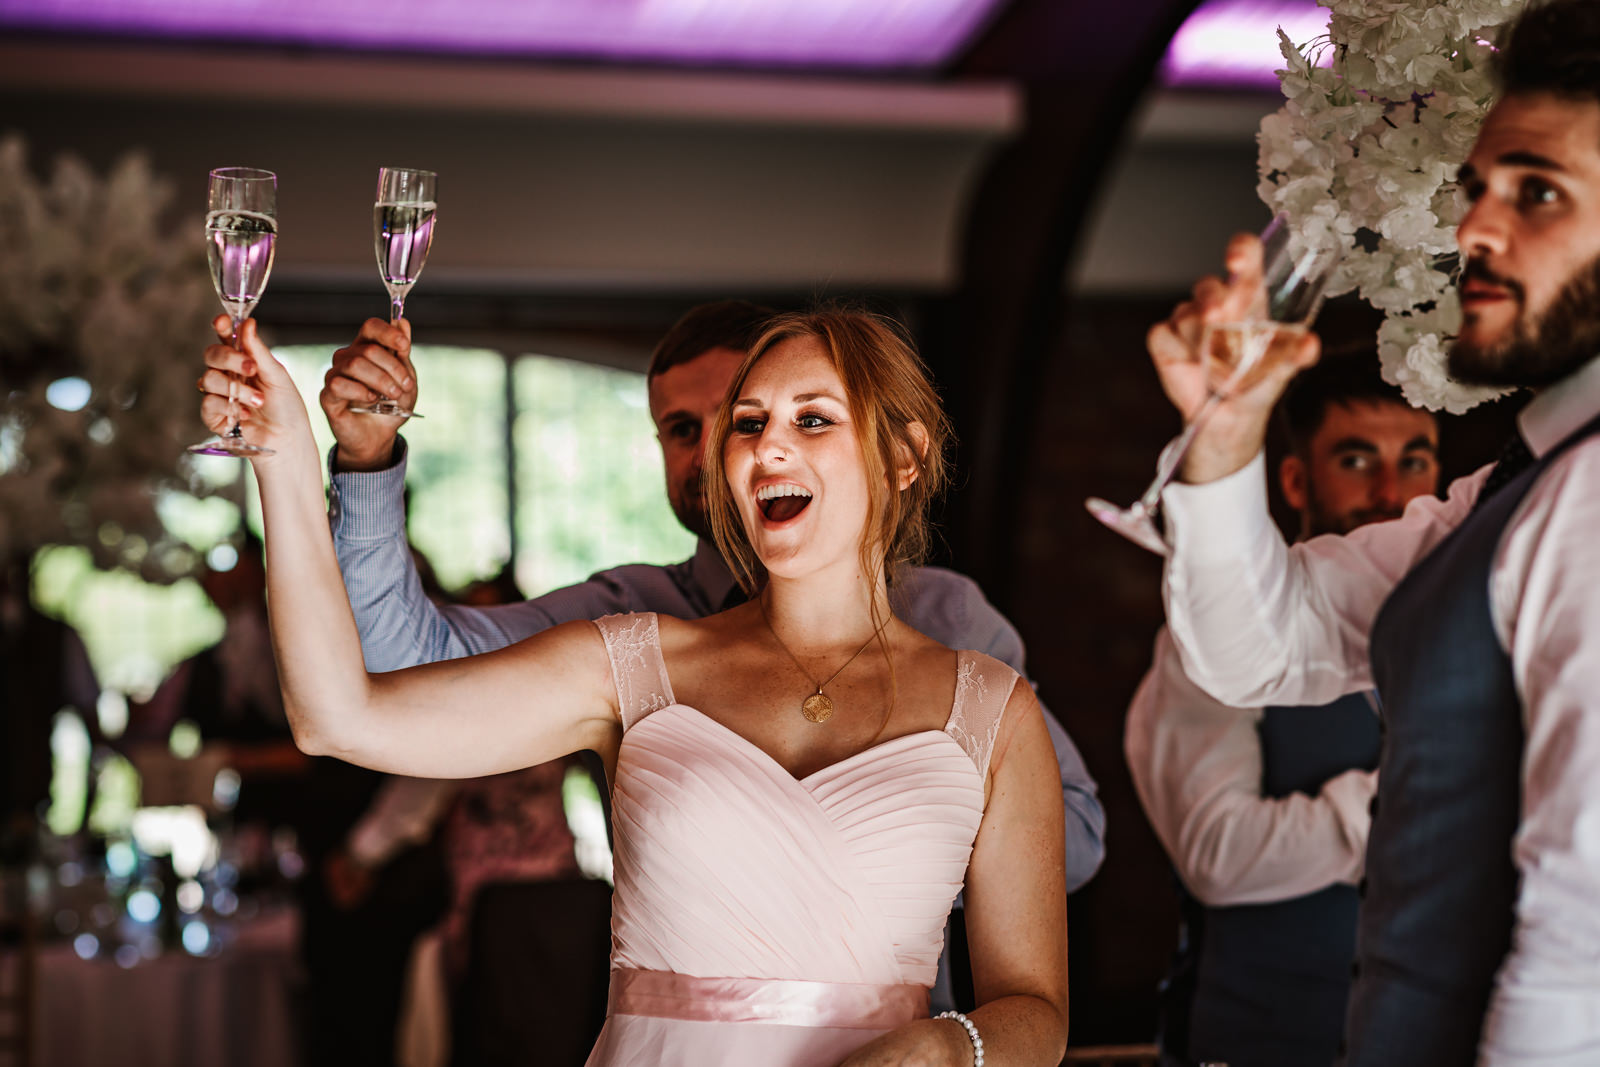 A toast at Colshaw Hall